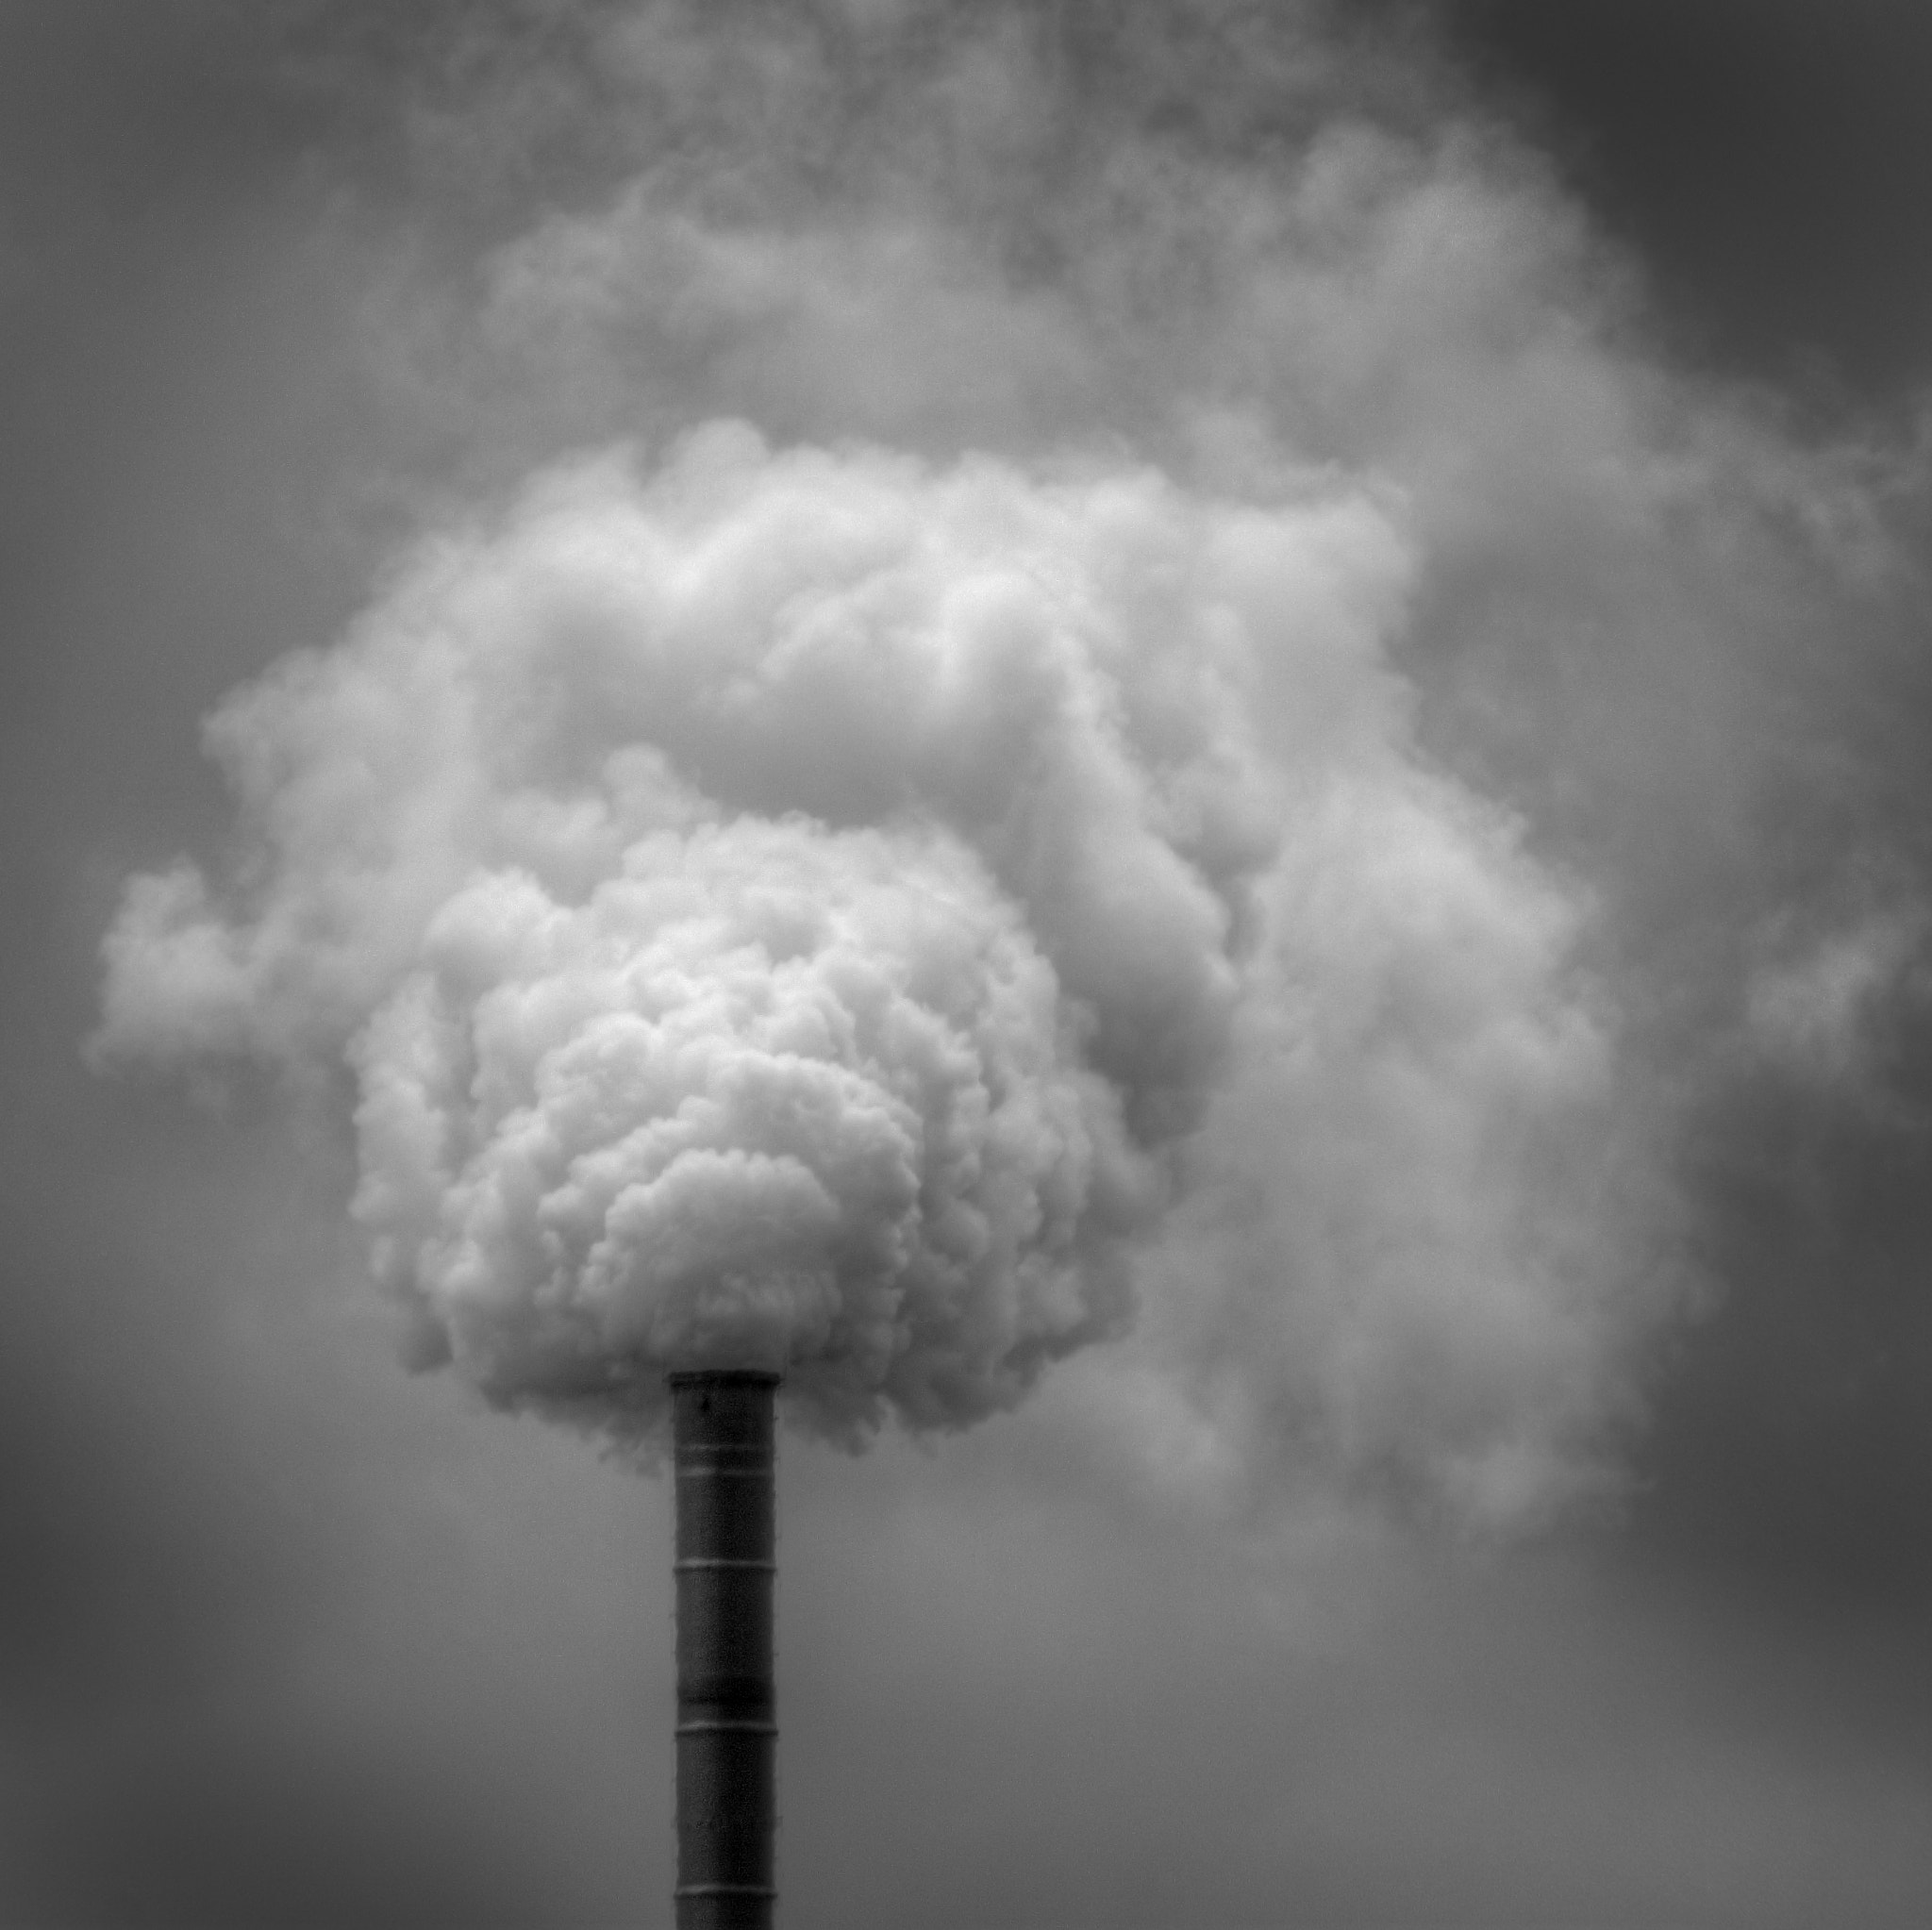 Photograph The Chimney by Andy MacDougall on 500px